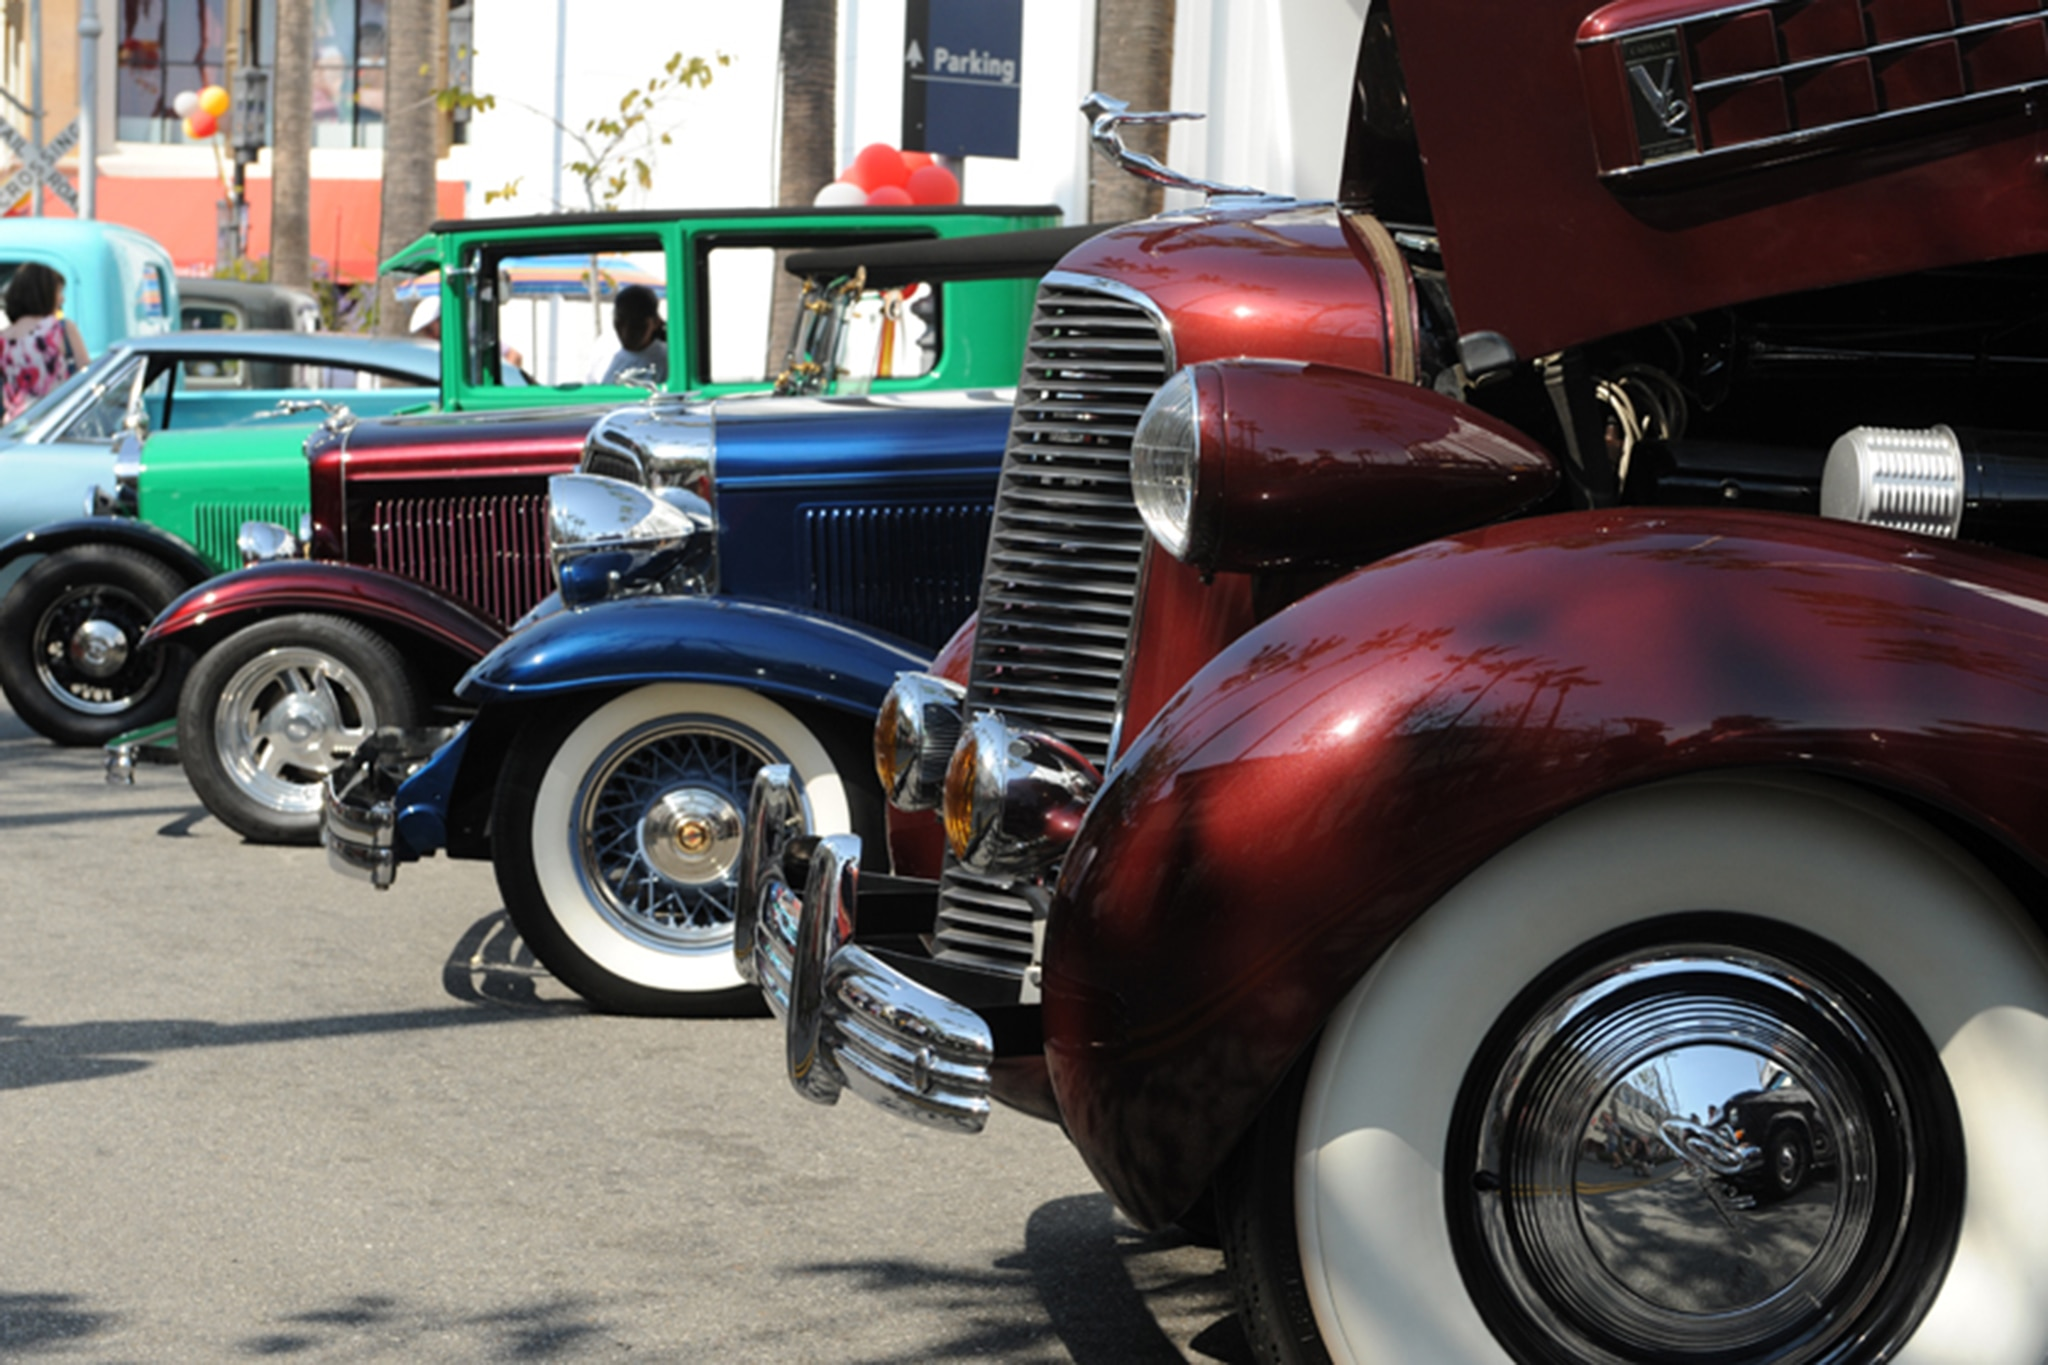 BMW Of Fairfax >> Gilmore Heritage Auto Show Celebrates 1957 American Cars ...